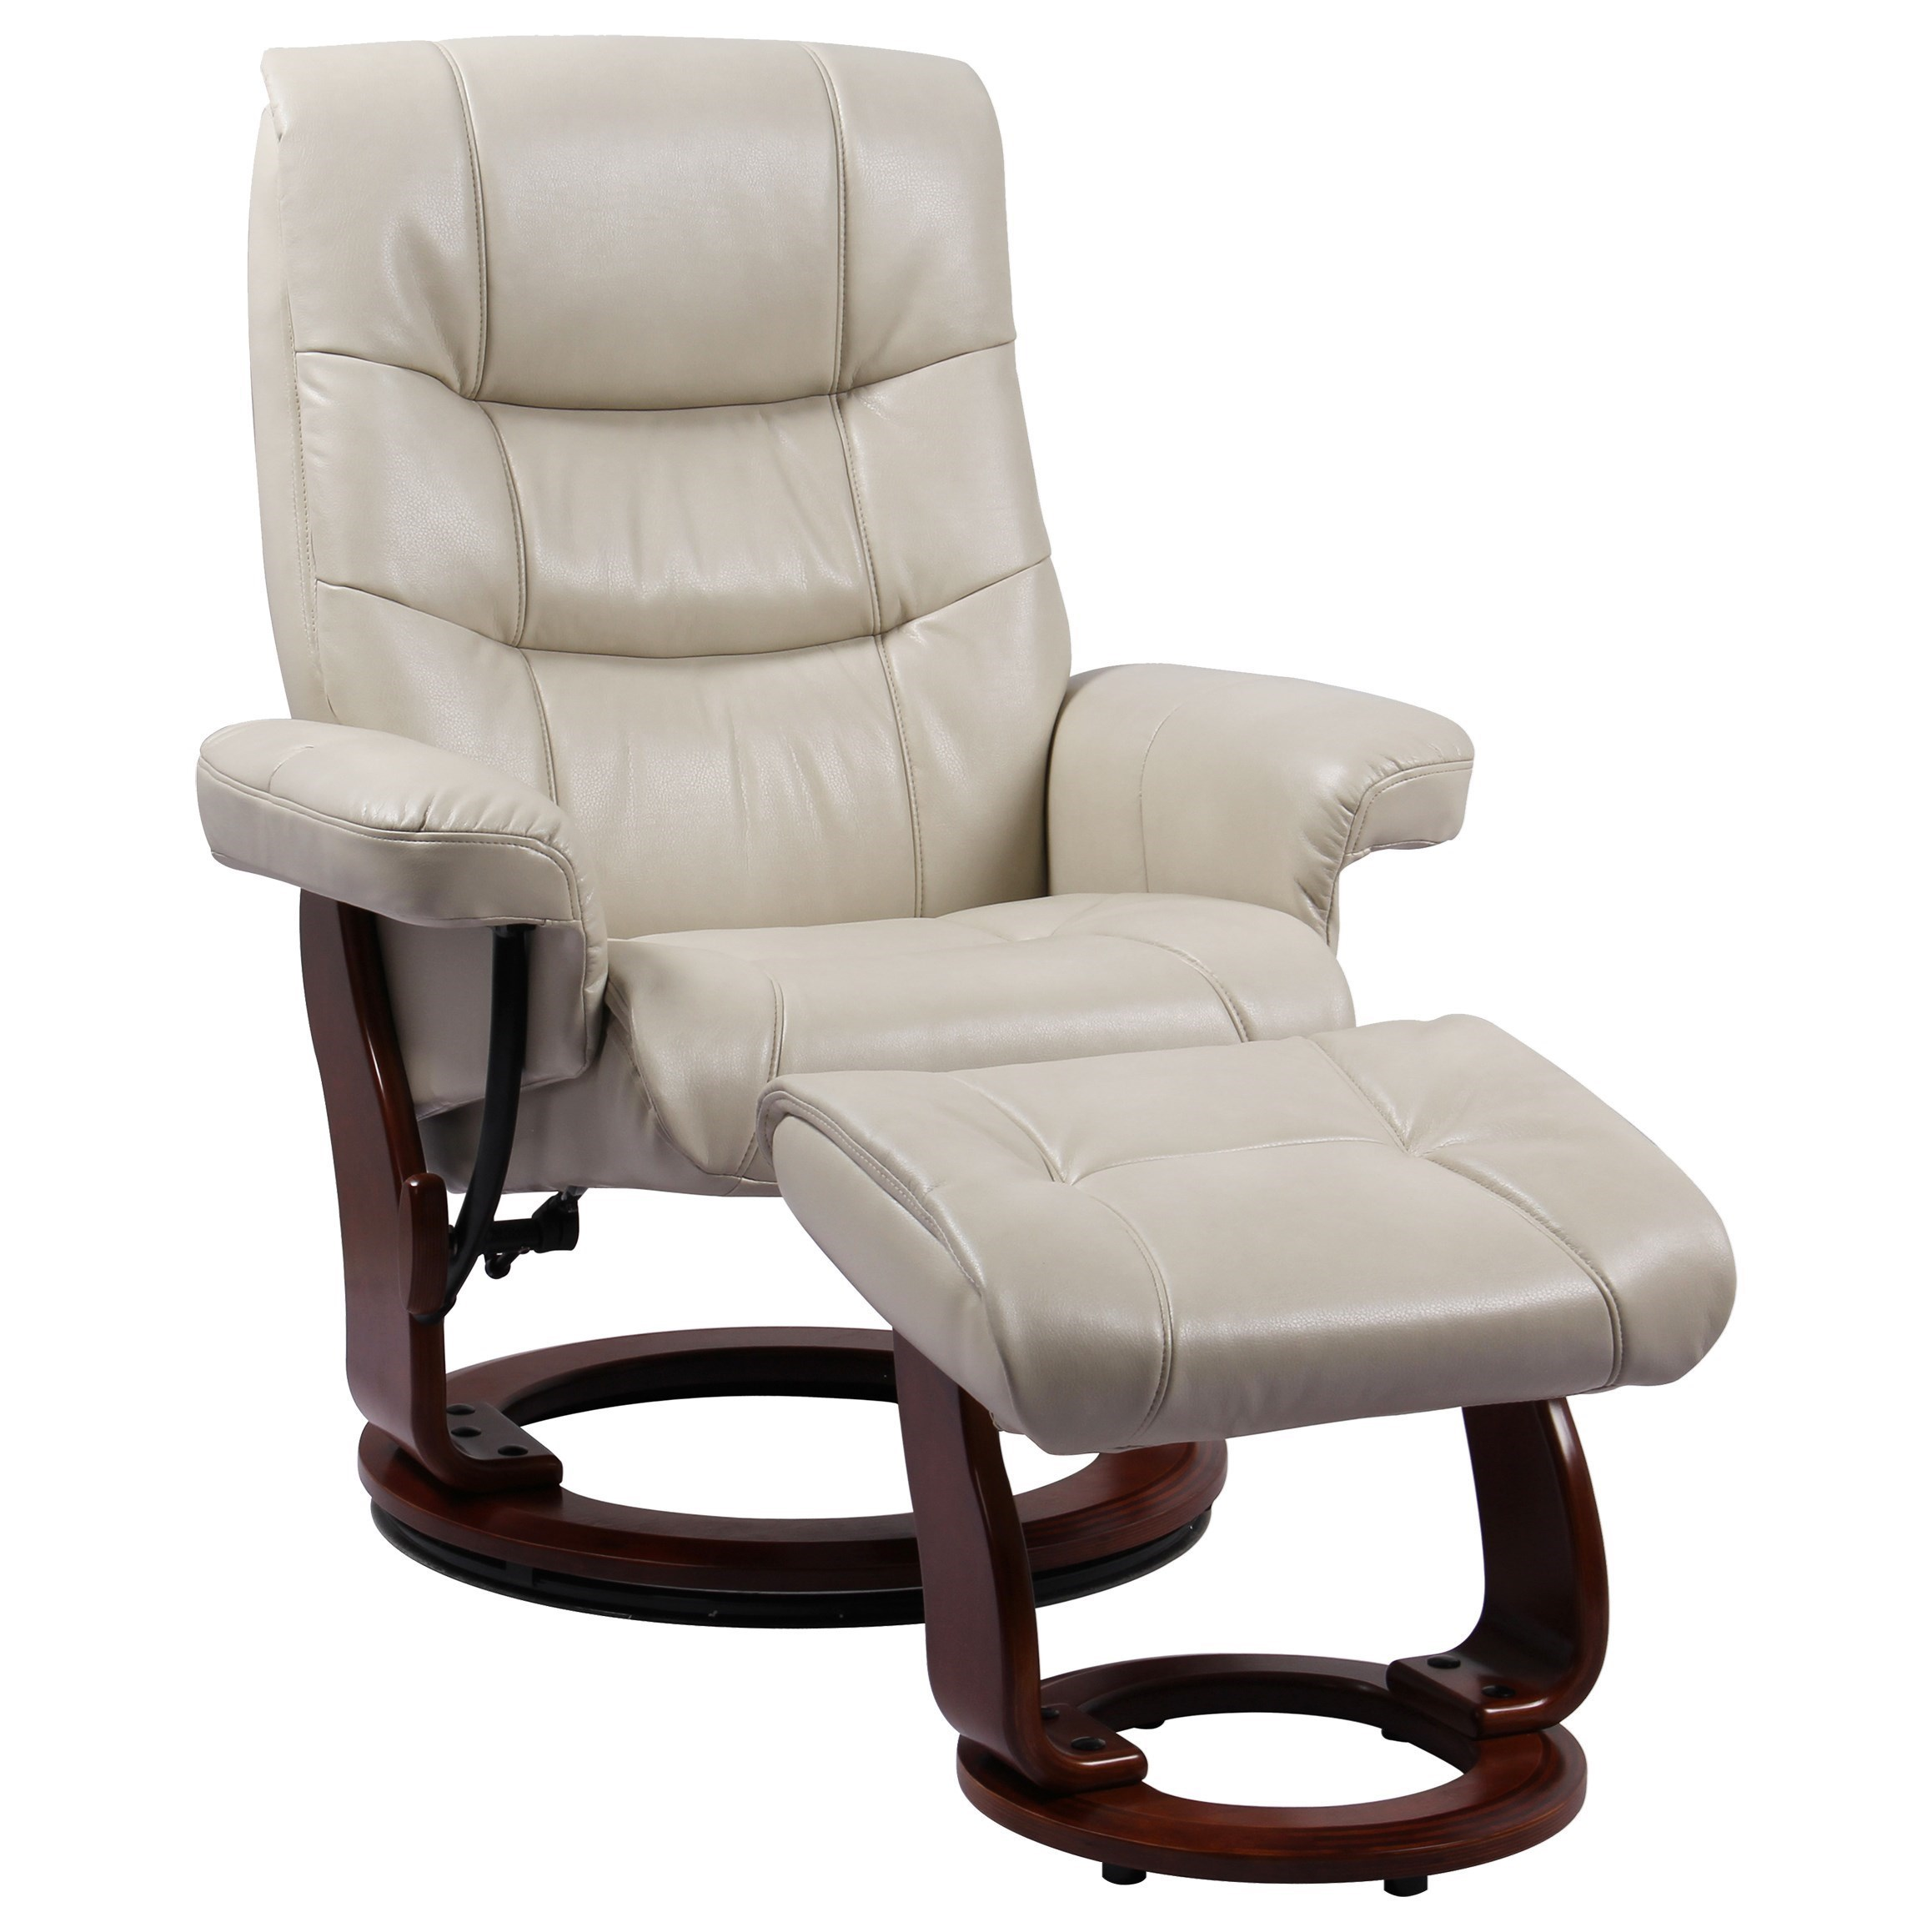 Benchmaster Rosa II Reclining Chair With Ottoman